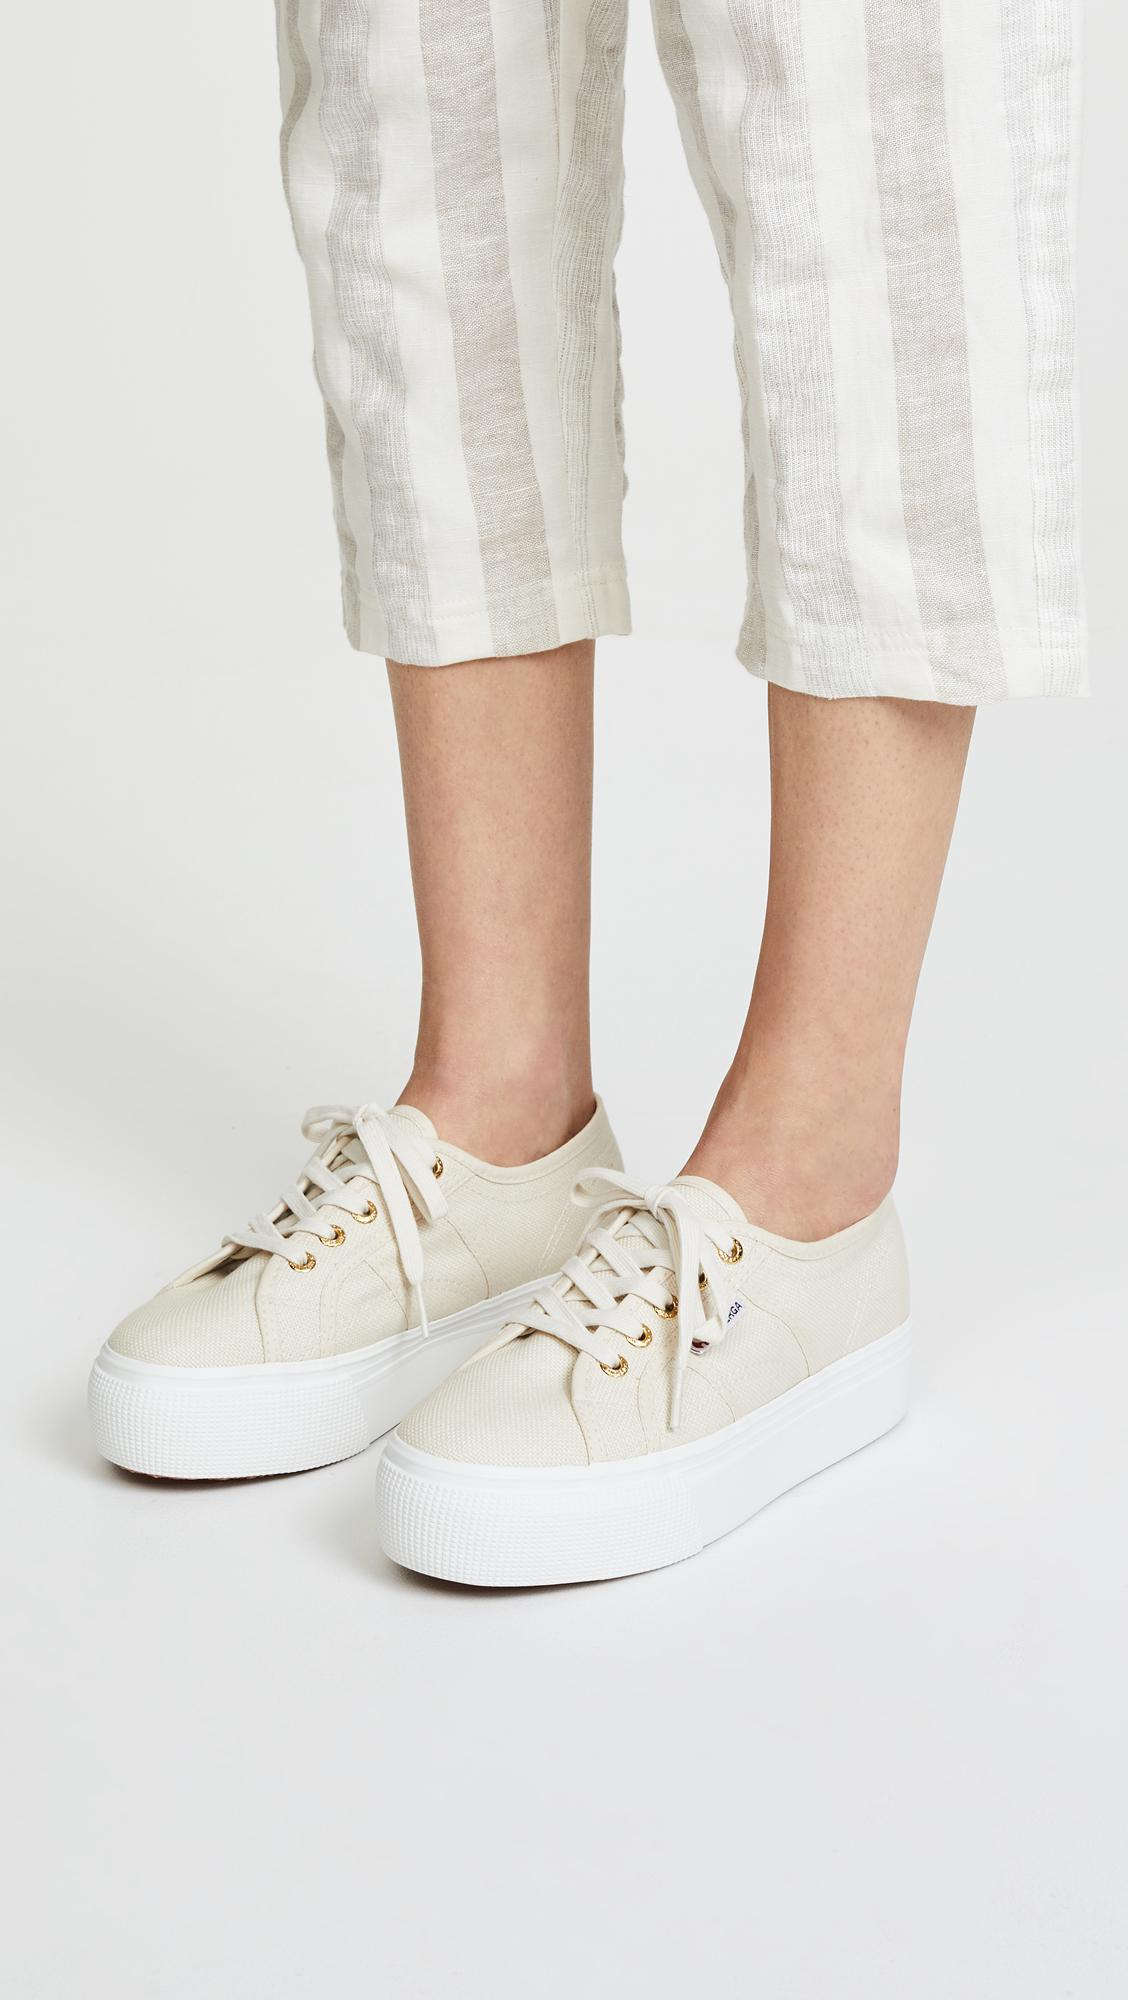 f073efcec030 Superga 2790 Platform Sneakers in White - Lyst